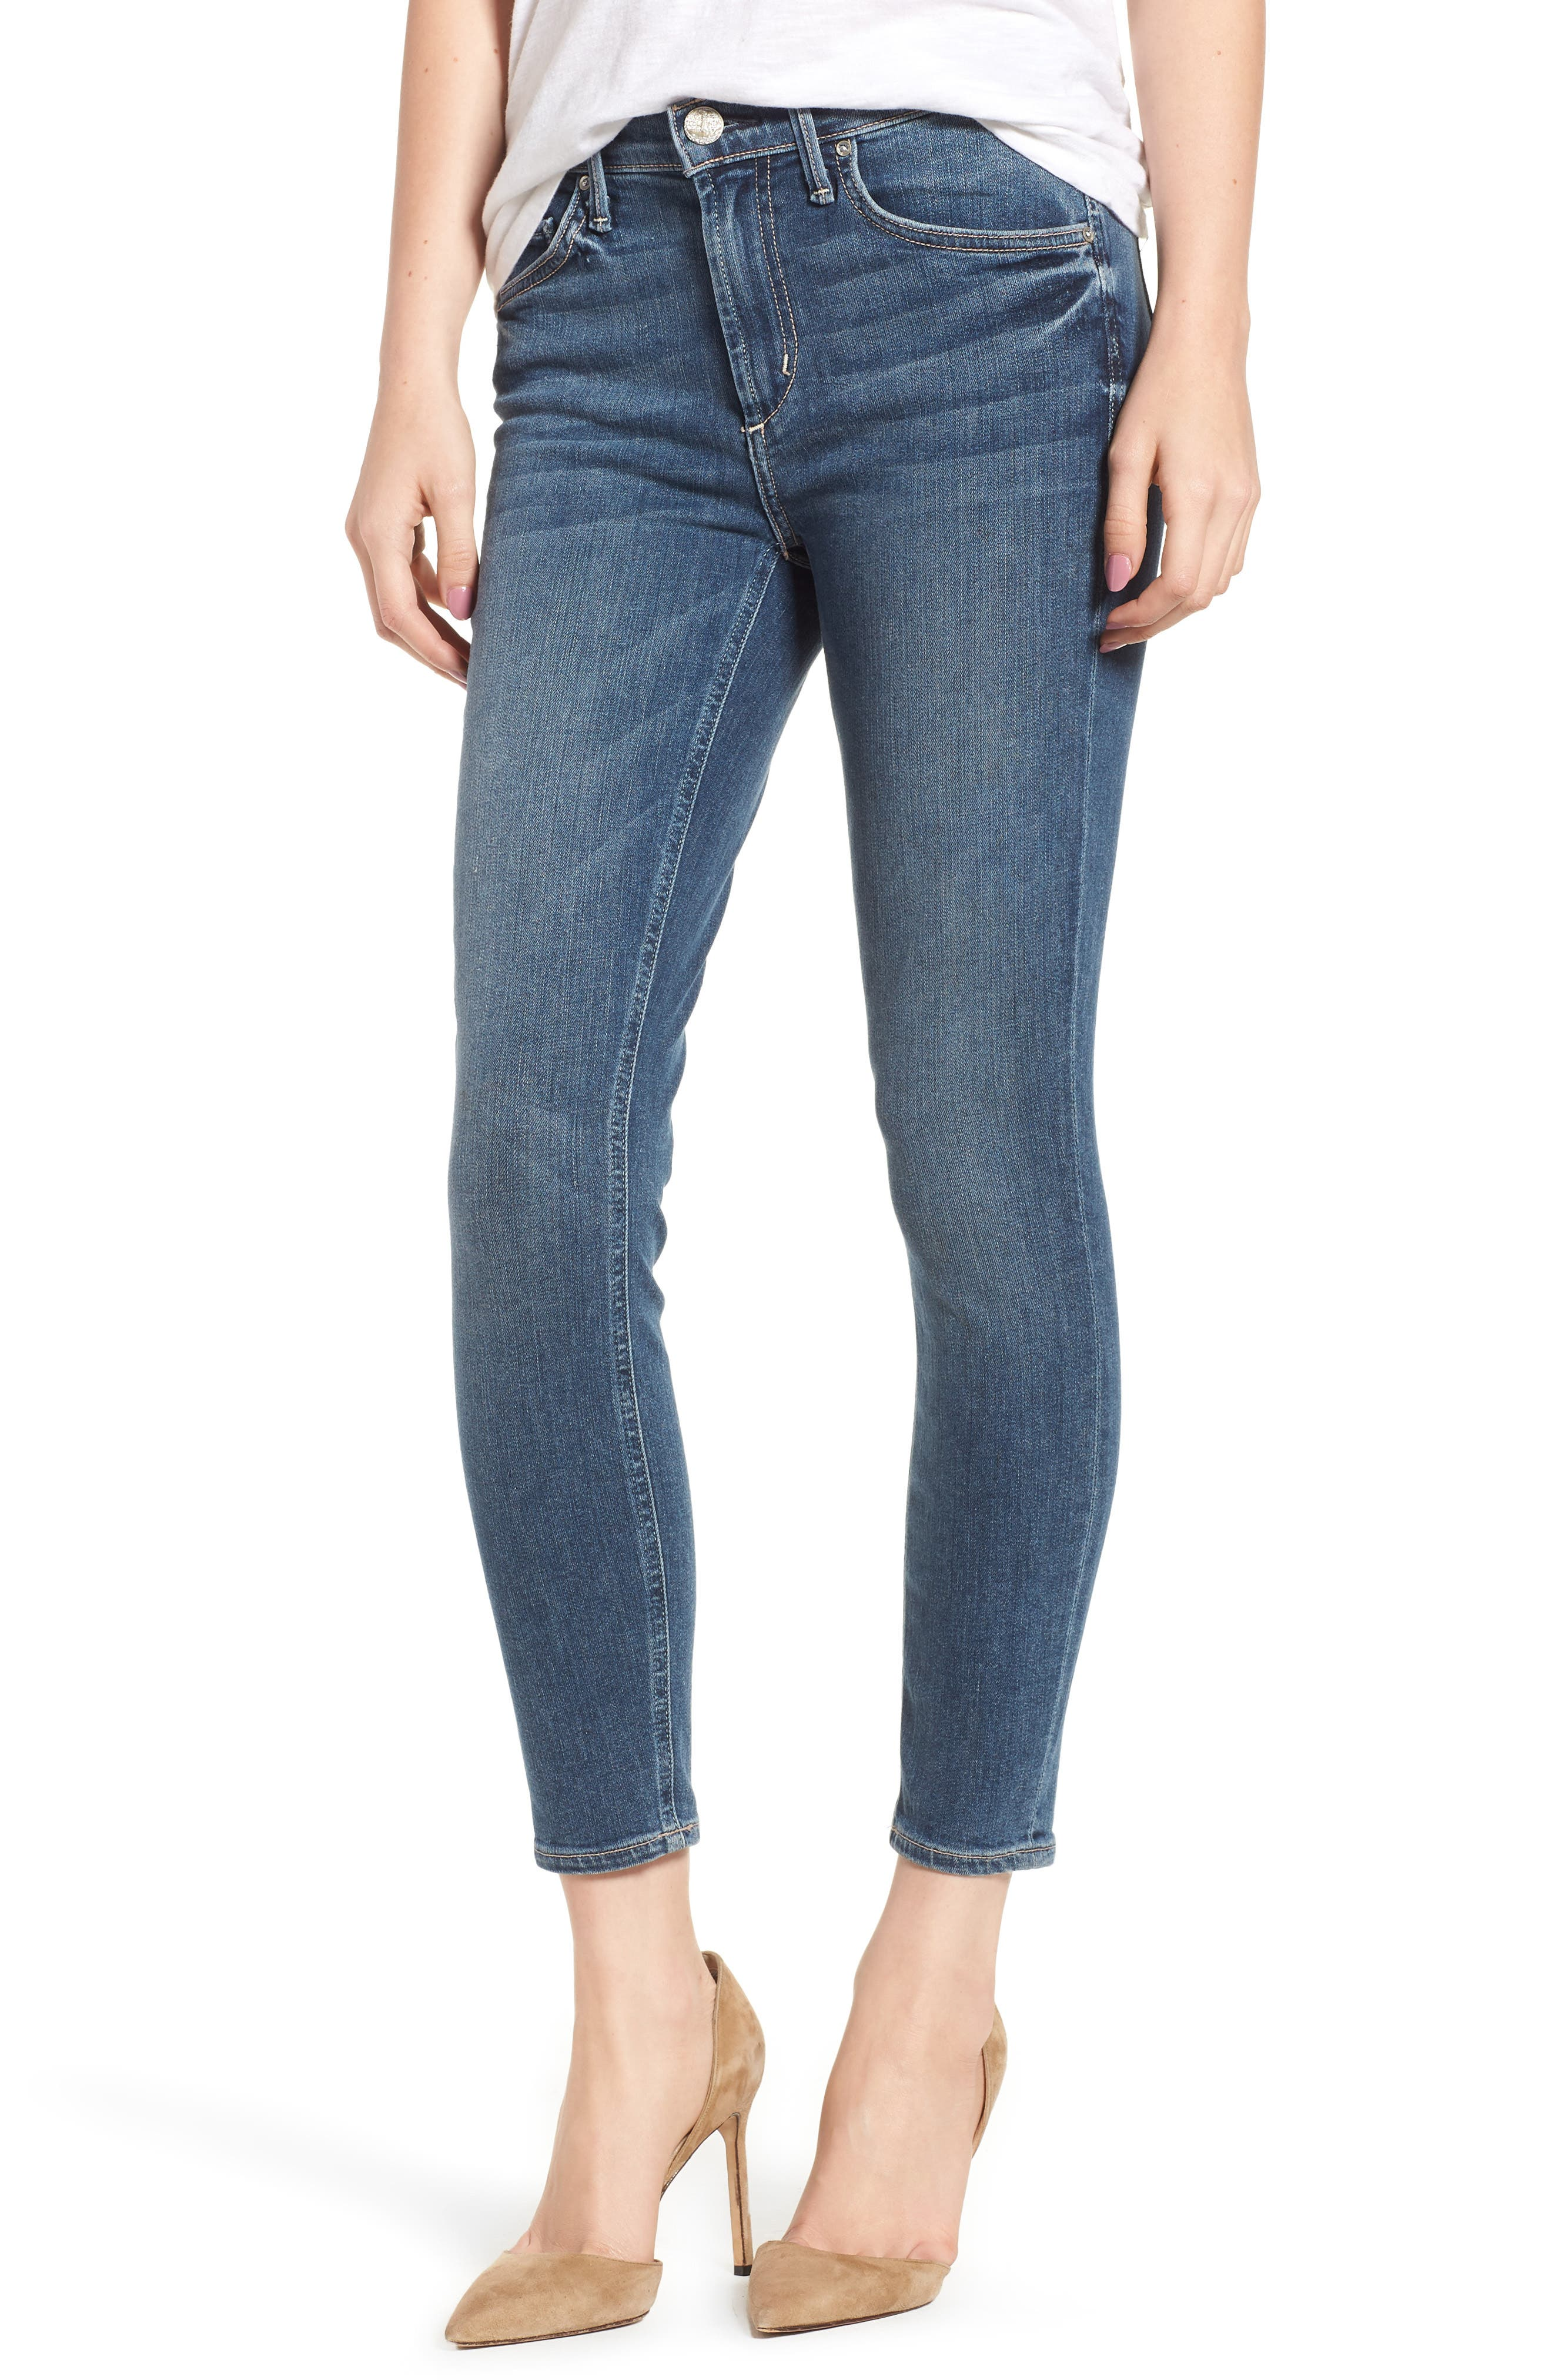 Newton Crop Skinny Jeans,                         Main,                         color, Barthelemy Gardens